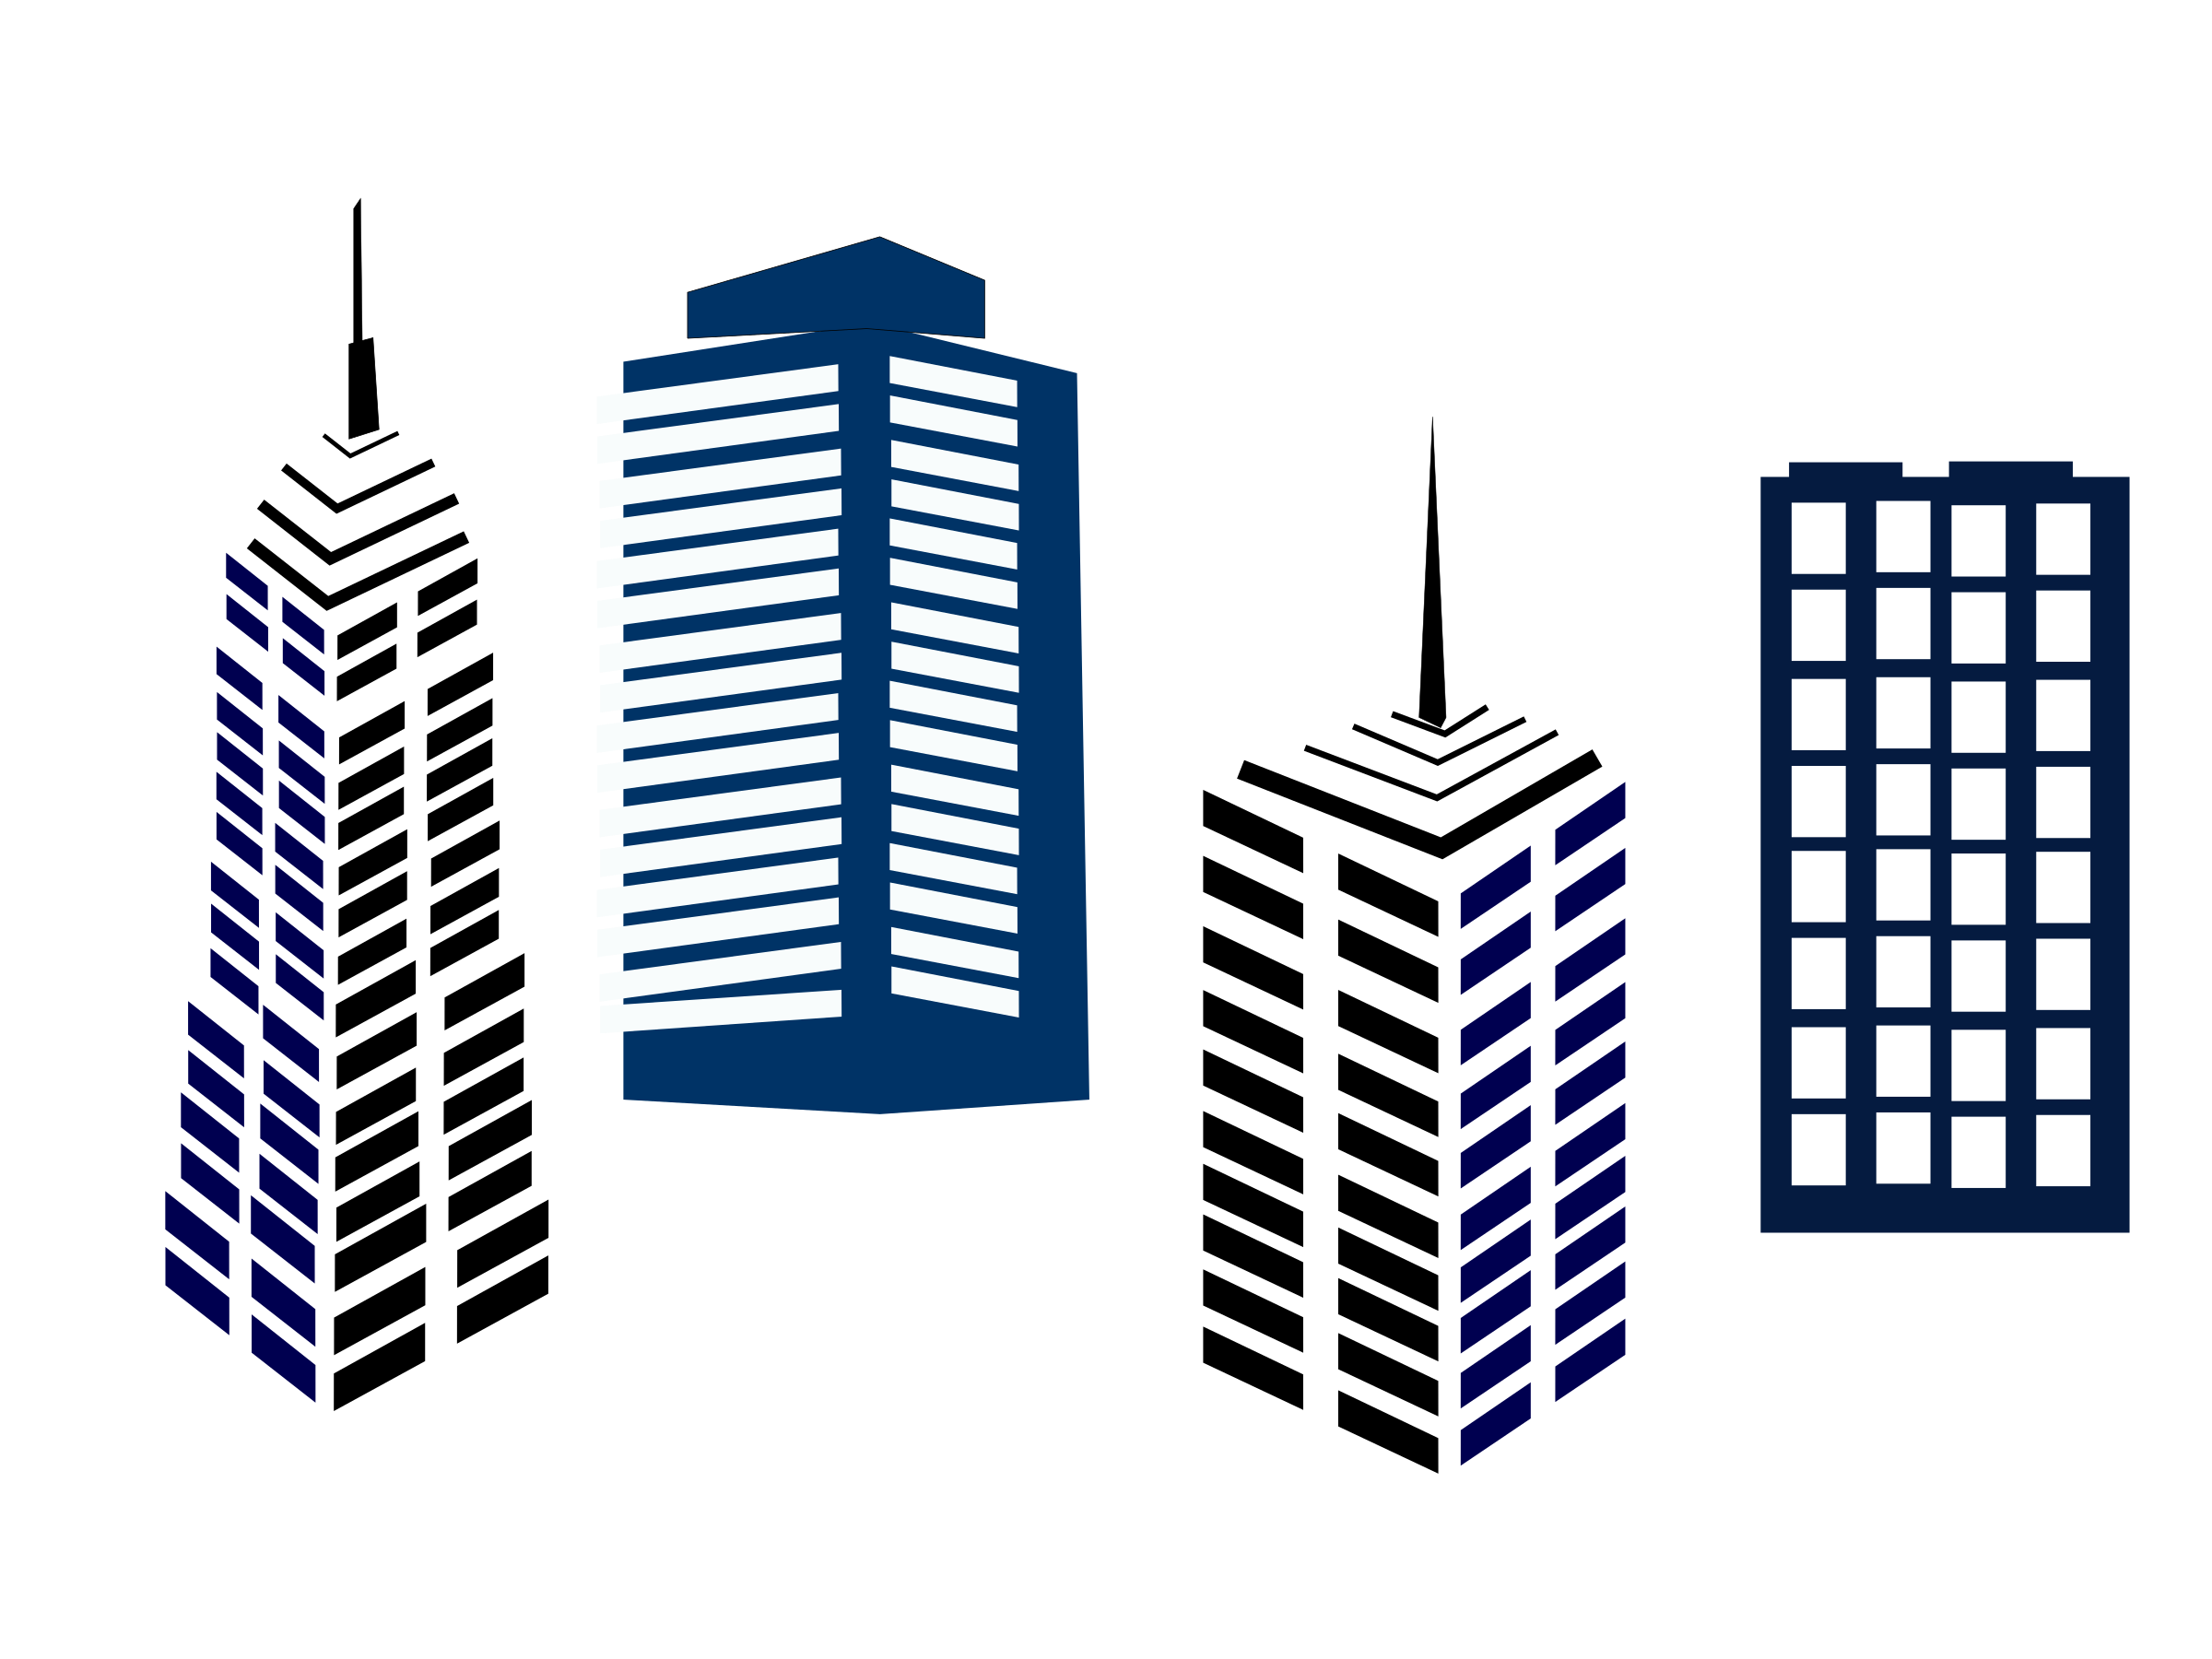 Types of commercial buildings. City clipart architecture